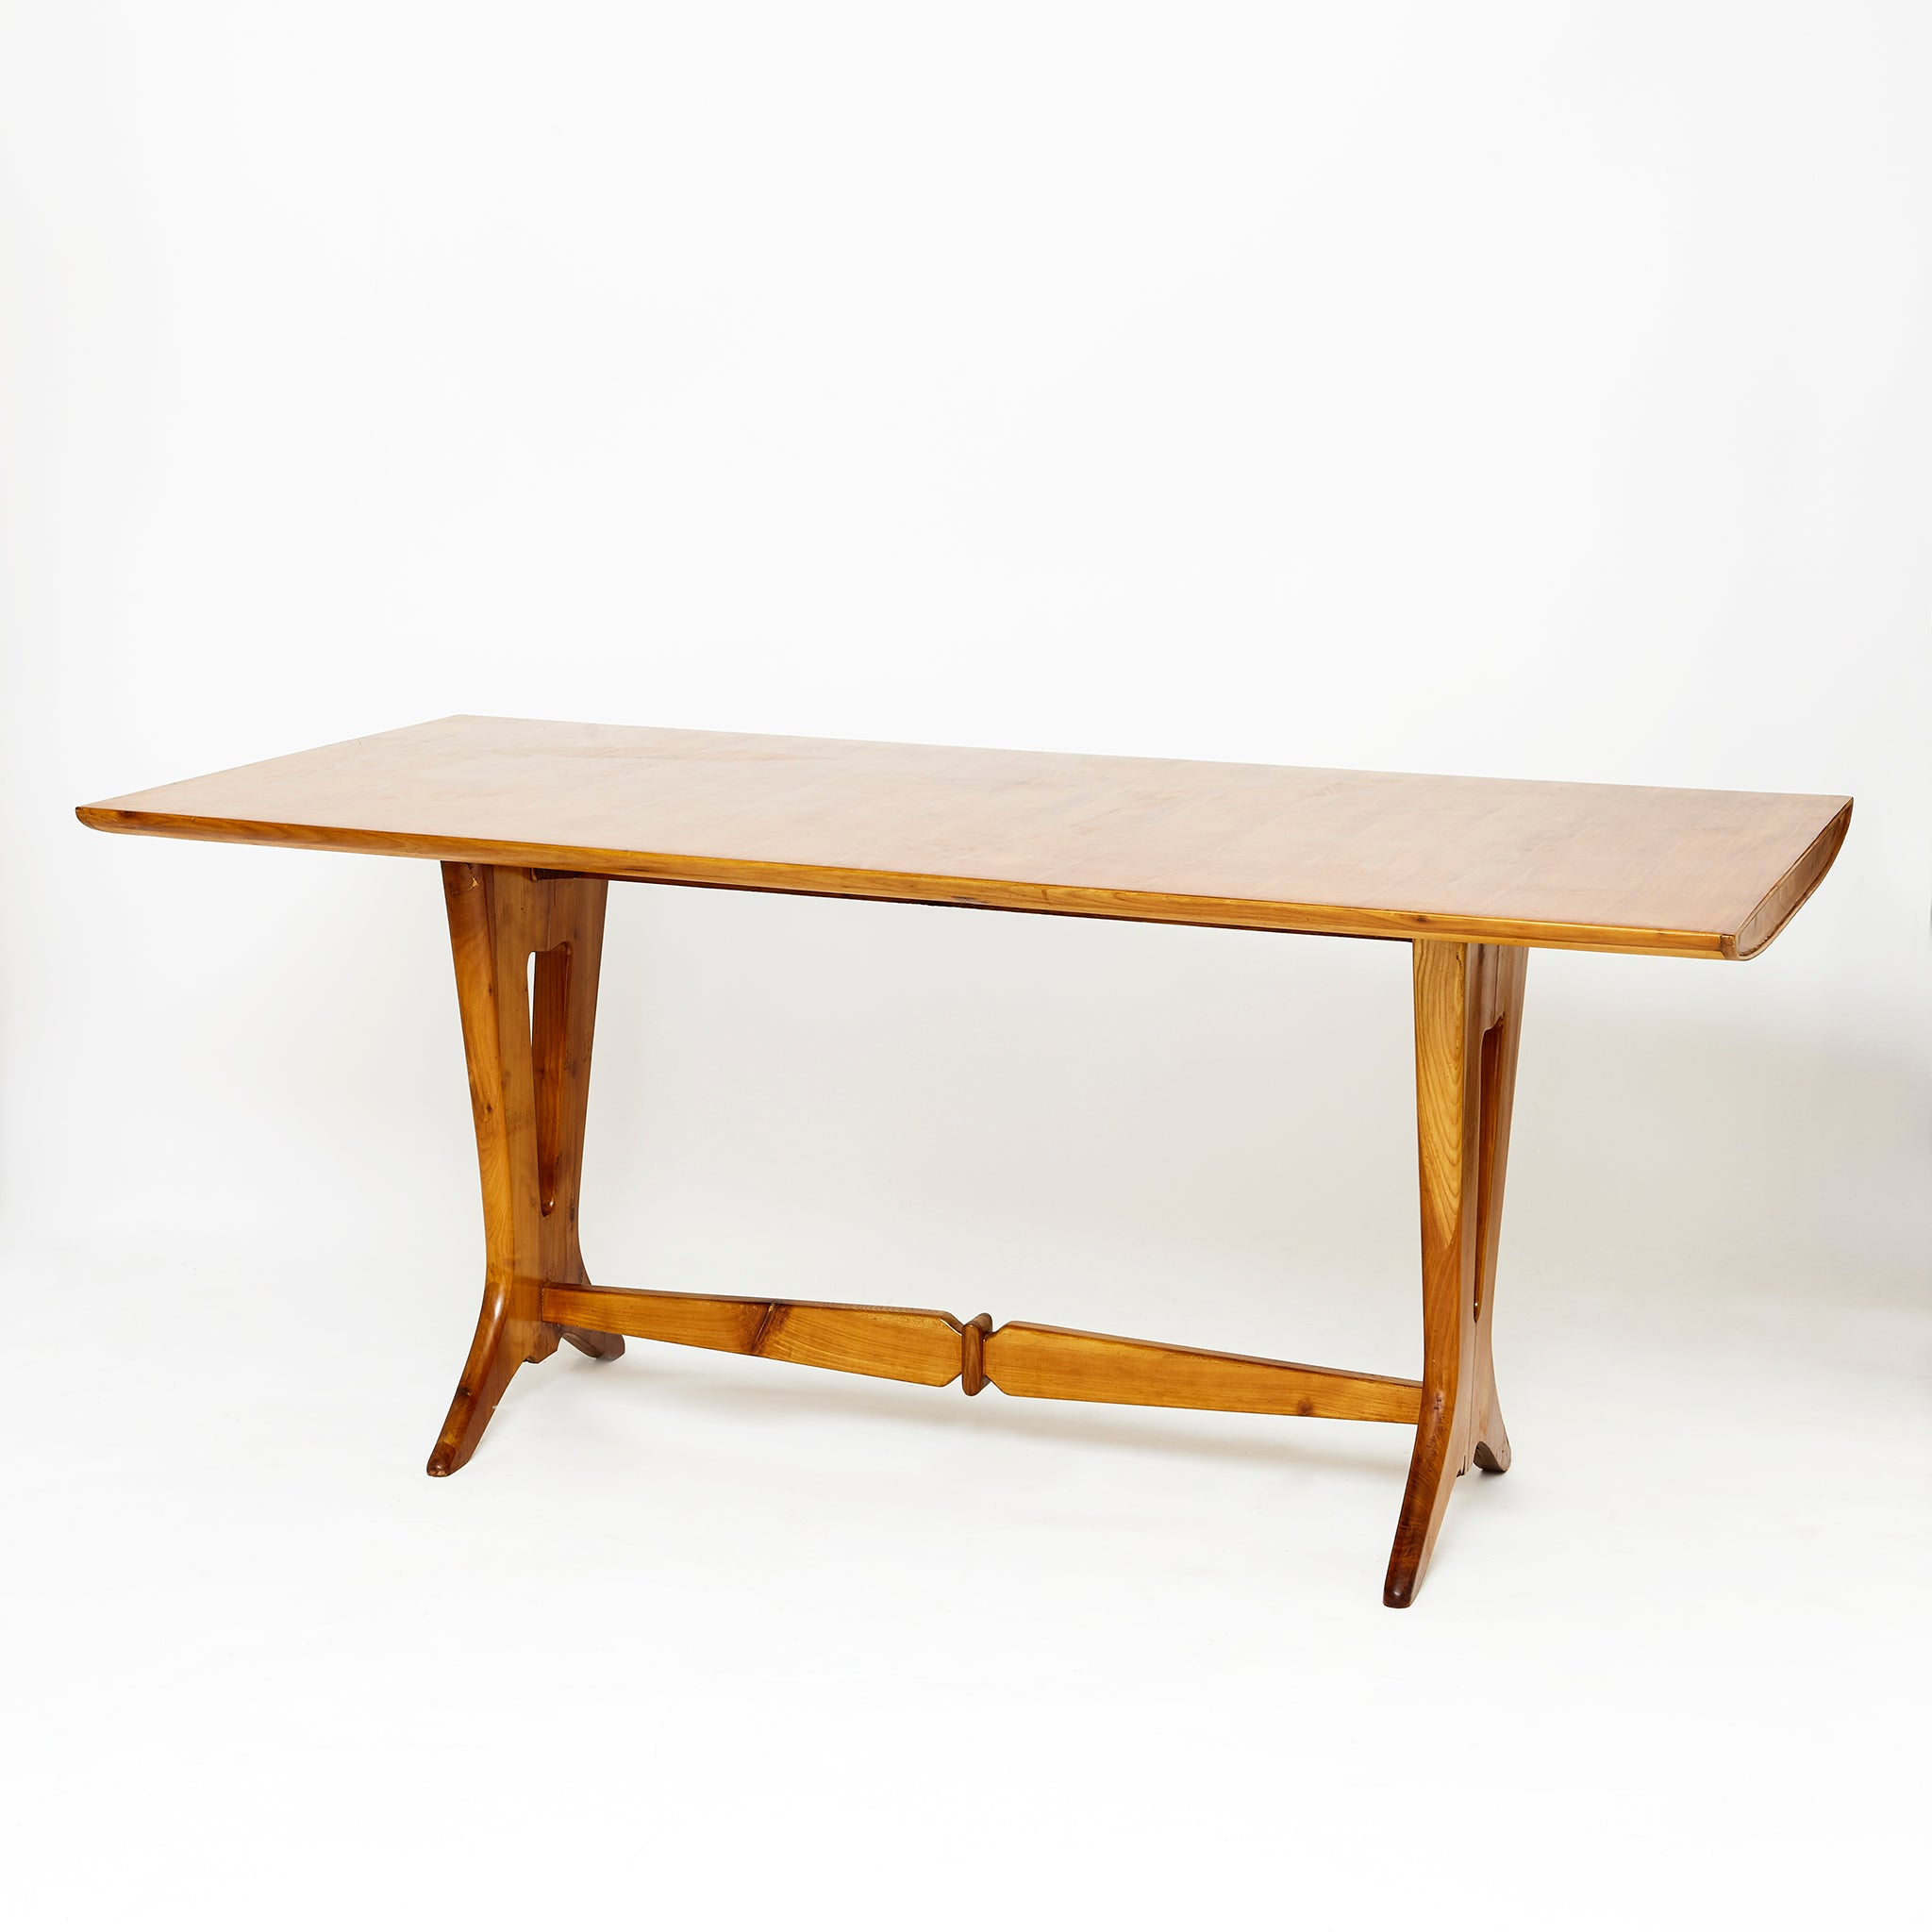 Italian mid century fruit wood dinning table with shaped stretcher.